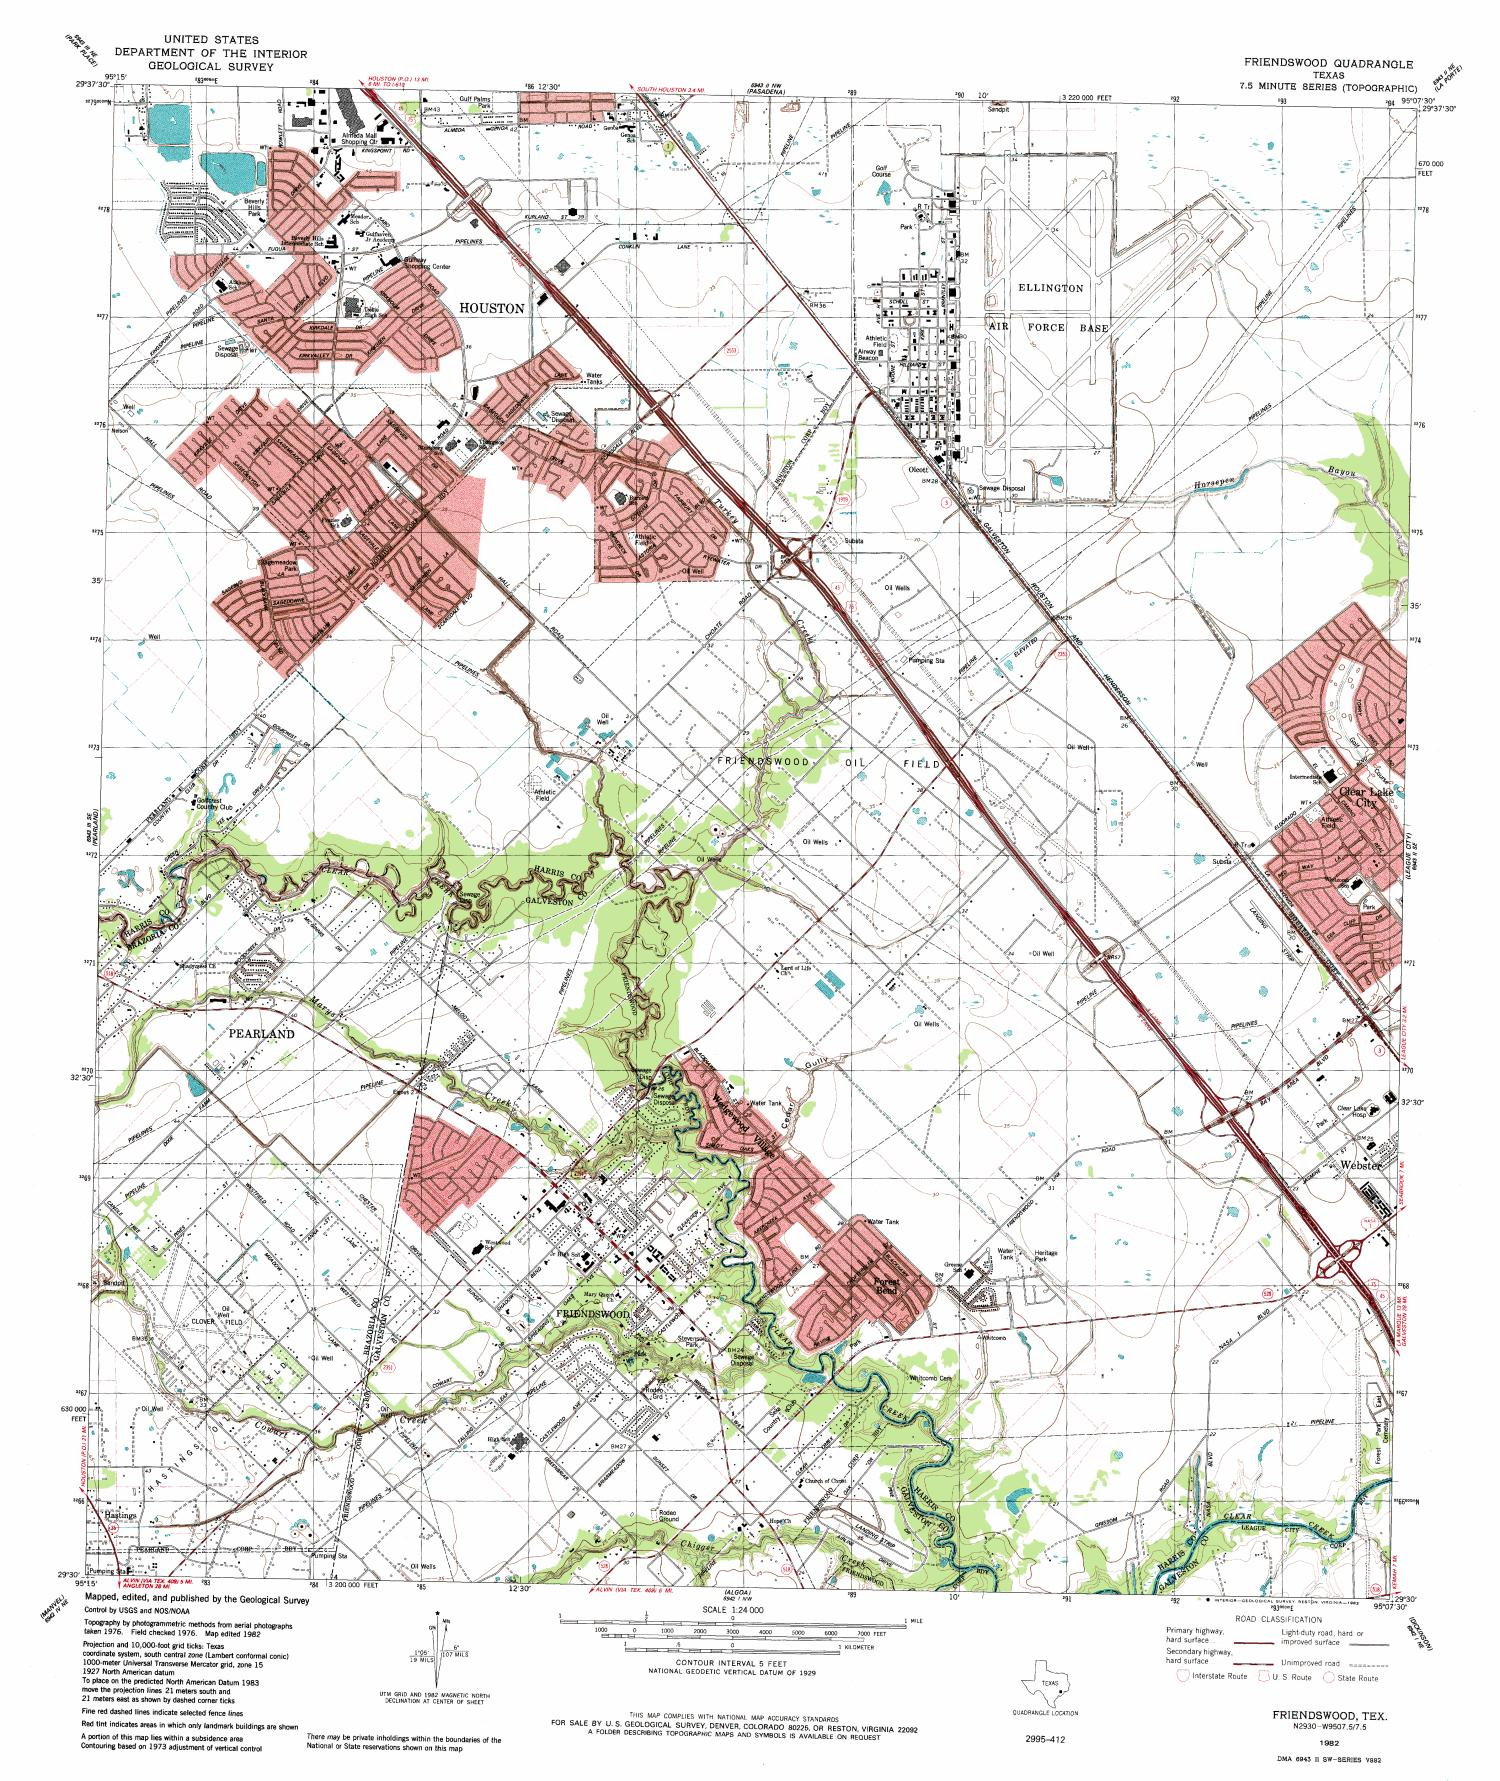 Friendswood Quadrangle, Topographic map of a portion of Texas from the United States Geological Survey (USGS) project. The map includes towns, historic or notable sites, bodies of water, and other geologic features. Scale 1:24,000,